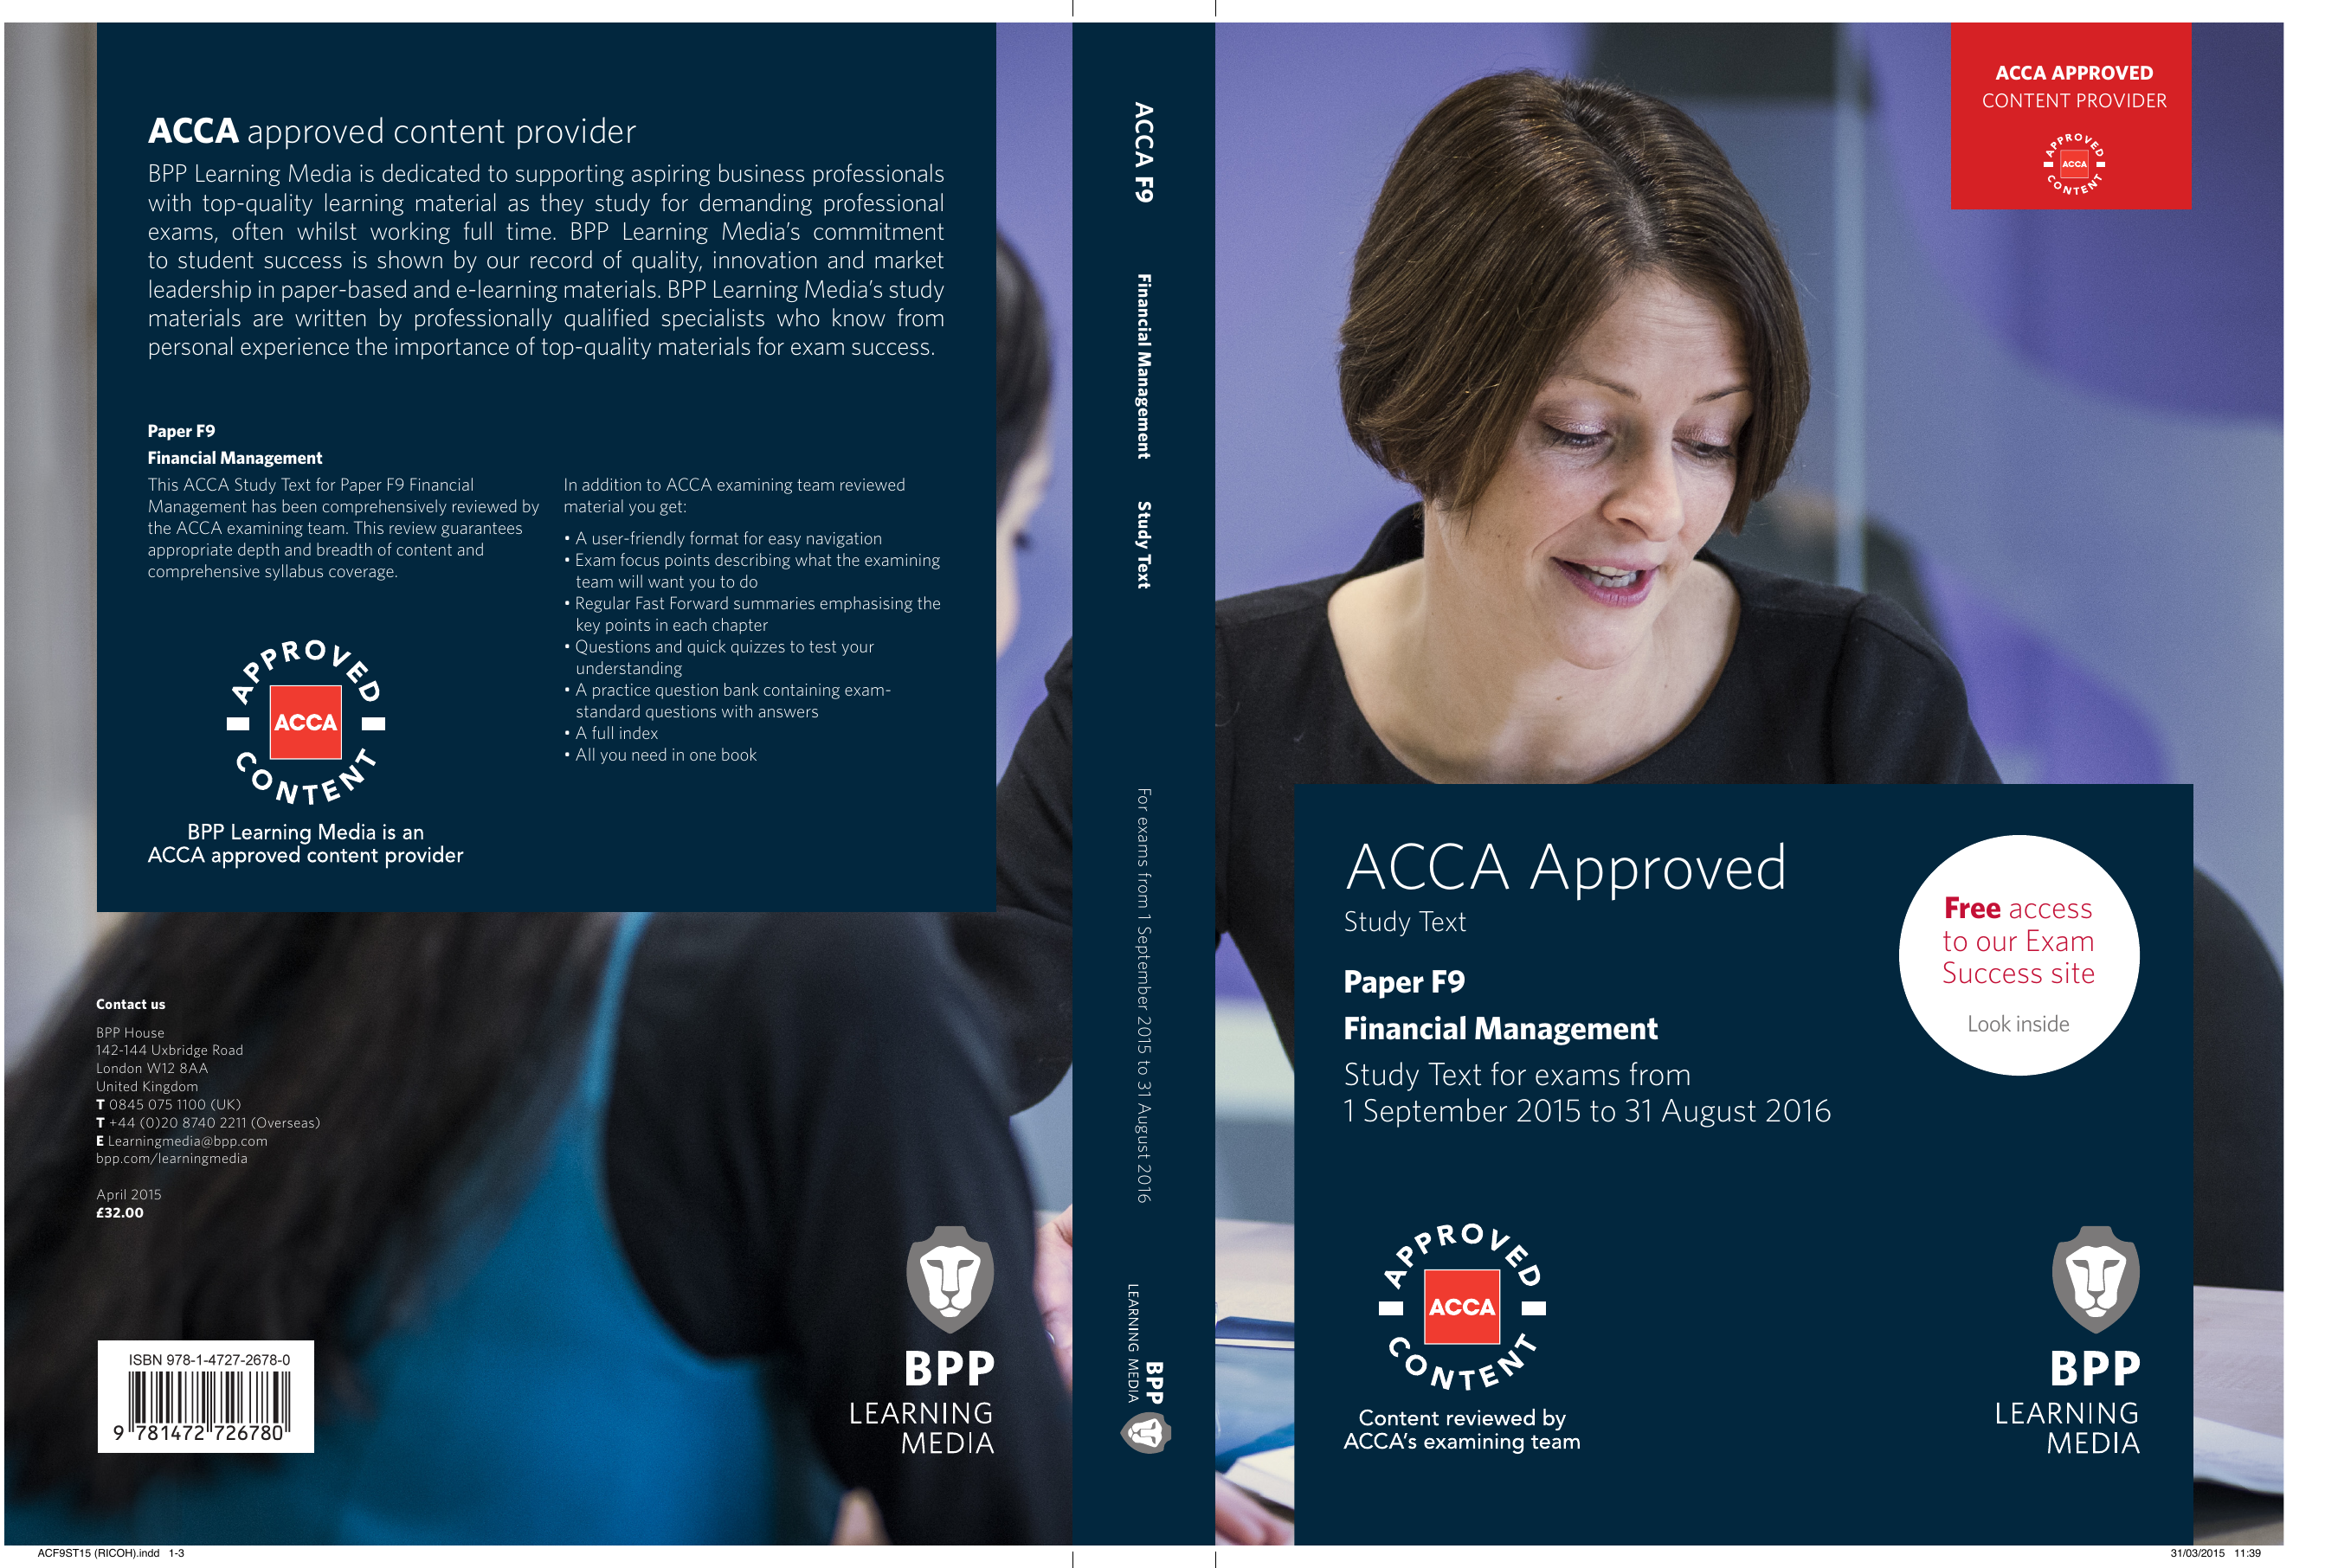 ACCA F9 - Financial Management Study Text (2016)